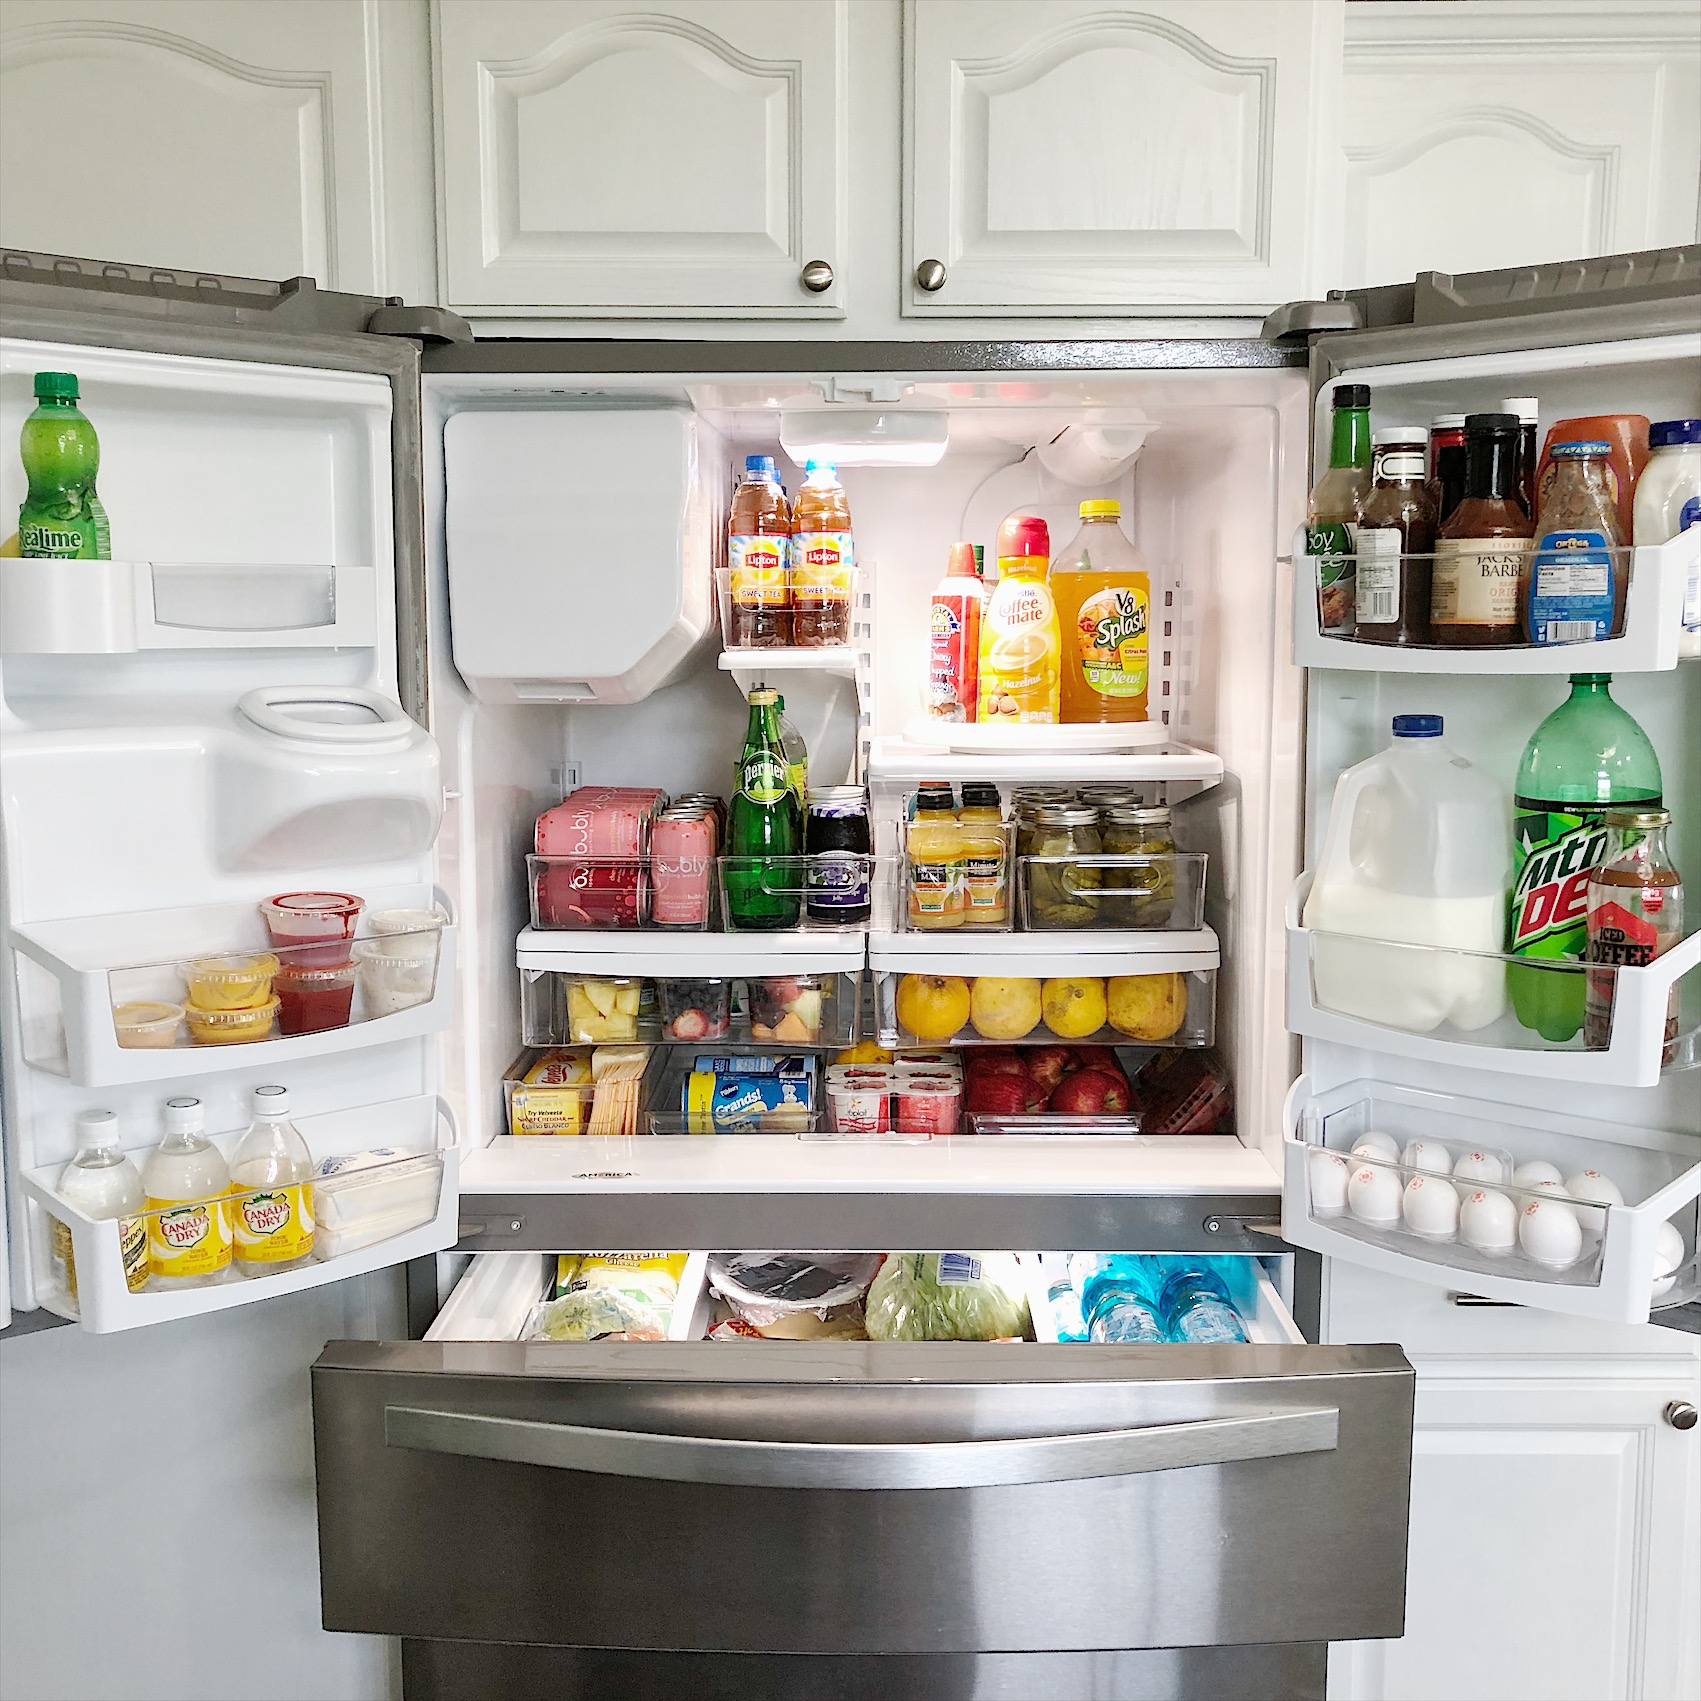 Refrigerator Organization full view with InterDesign bins